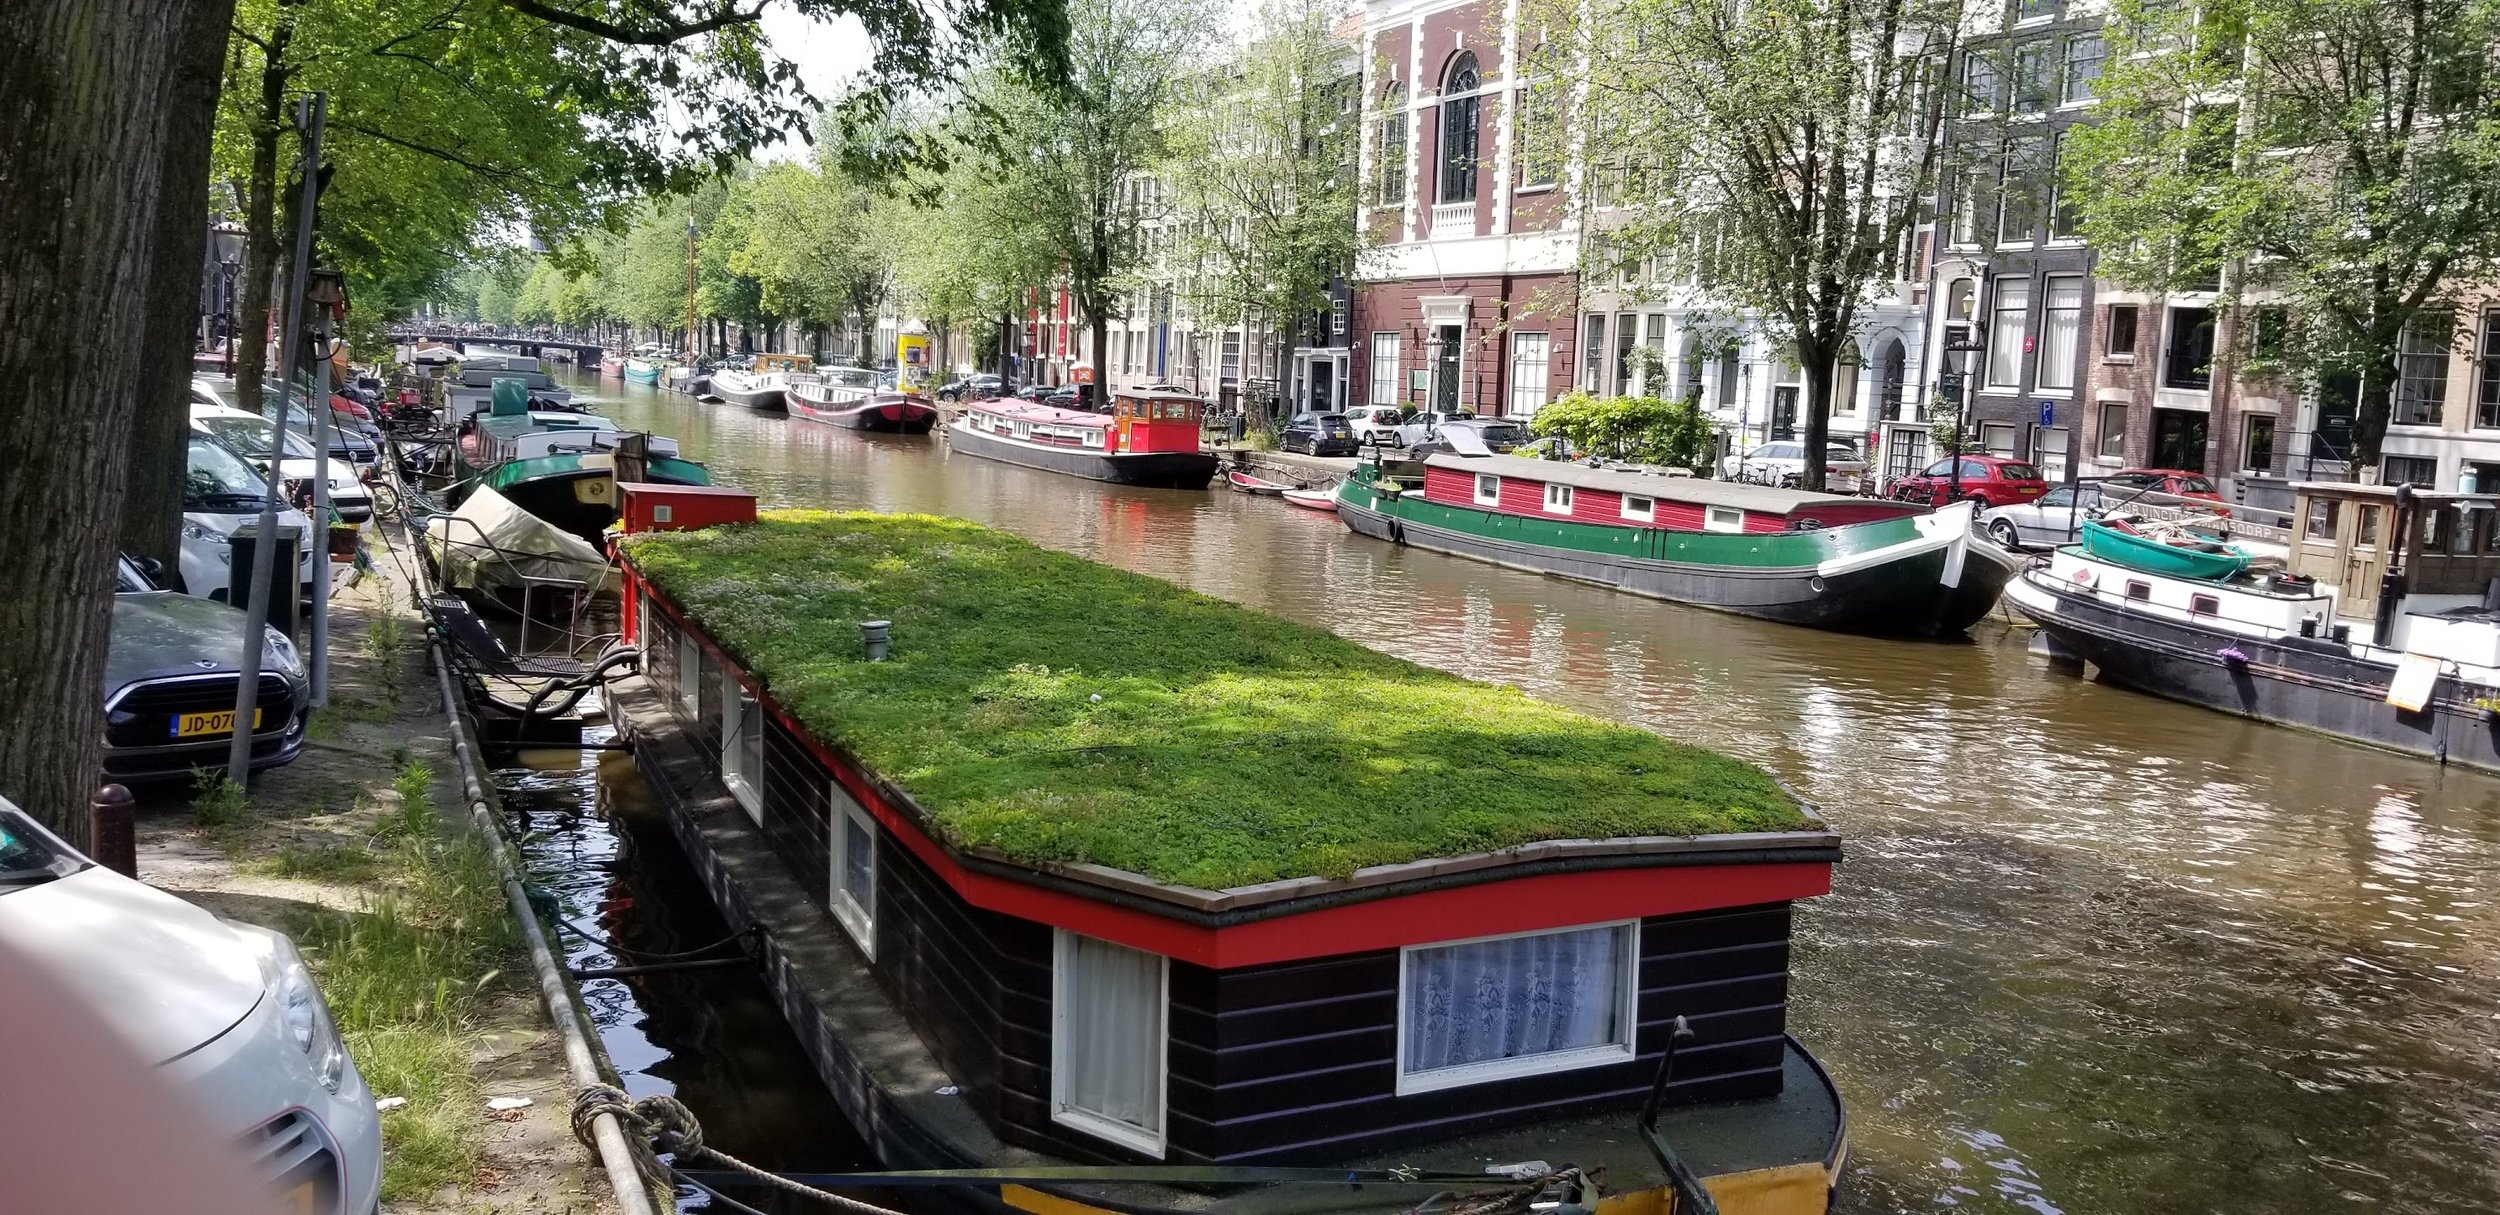 Dutch houseboats with greened roofs.